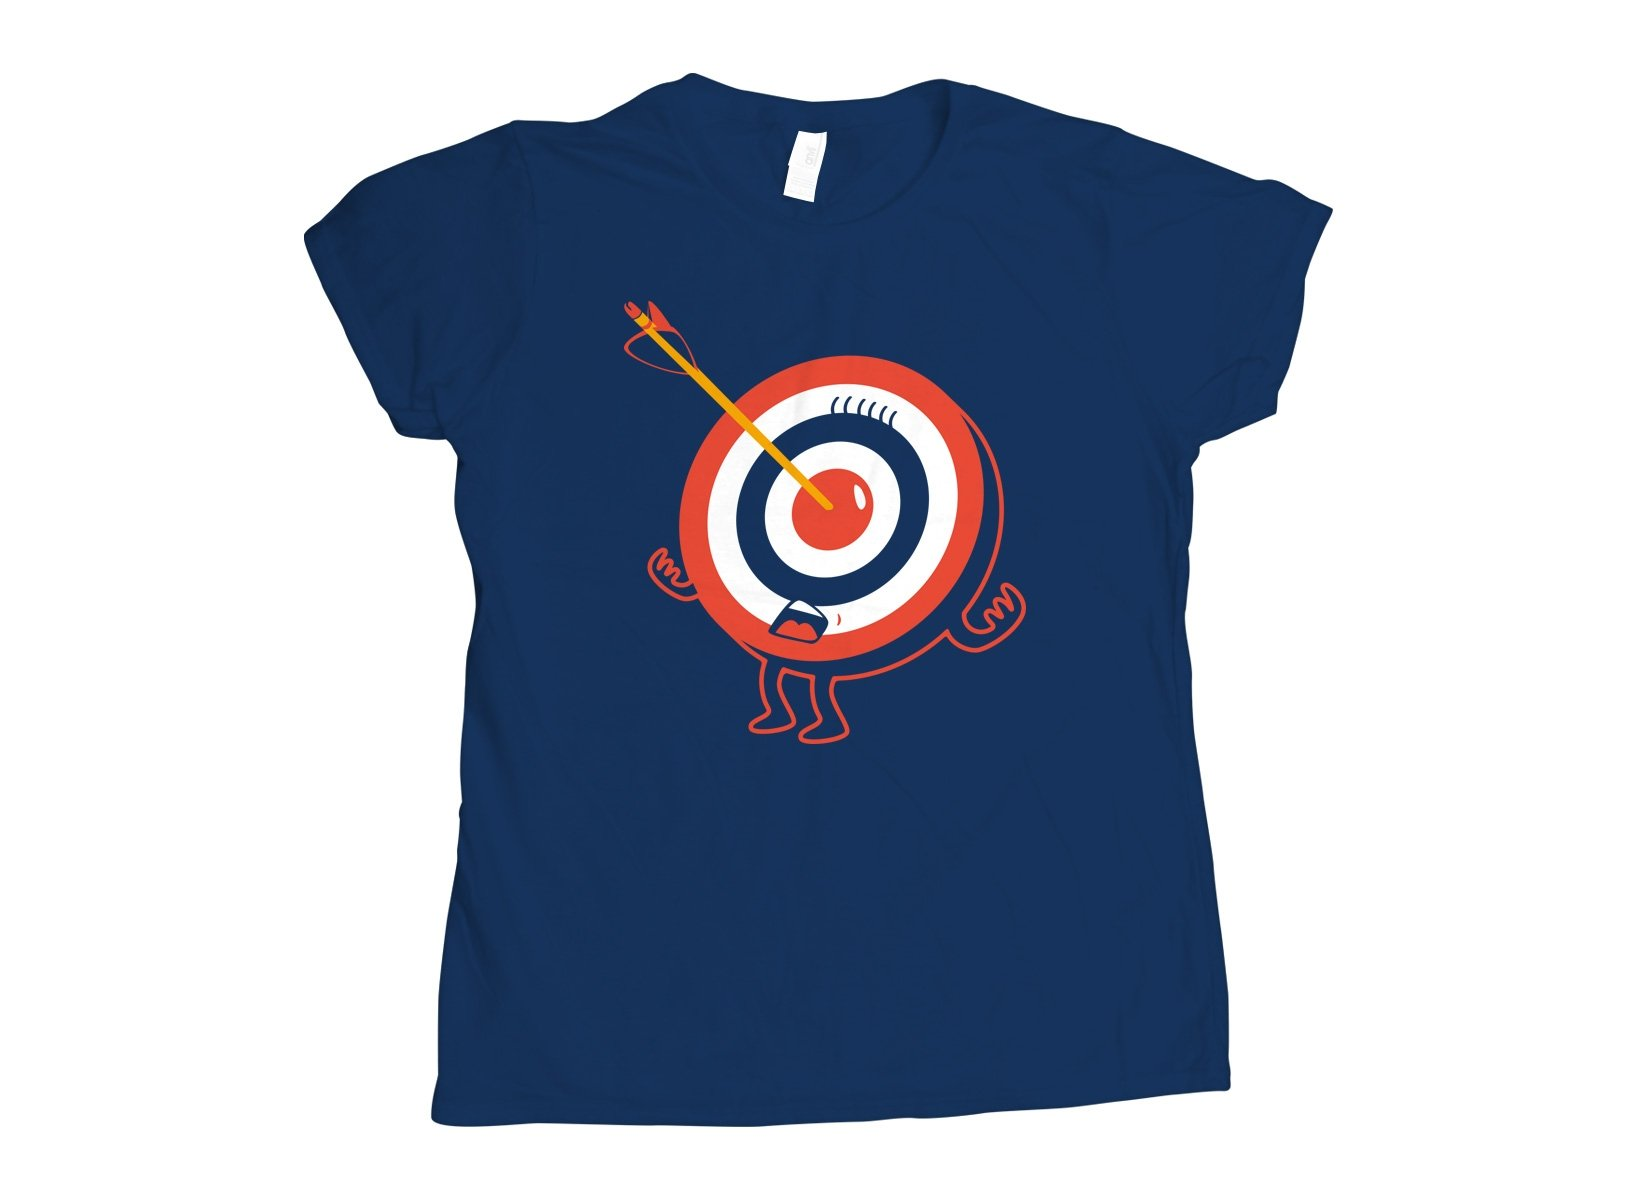 Bullseye on Womens T-Shirt